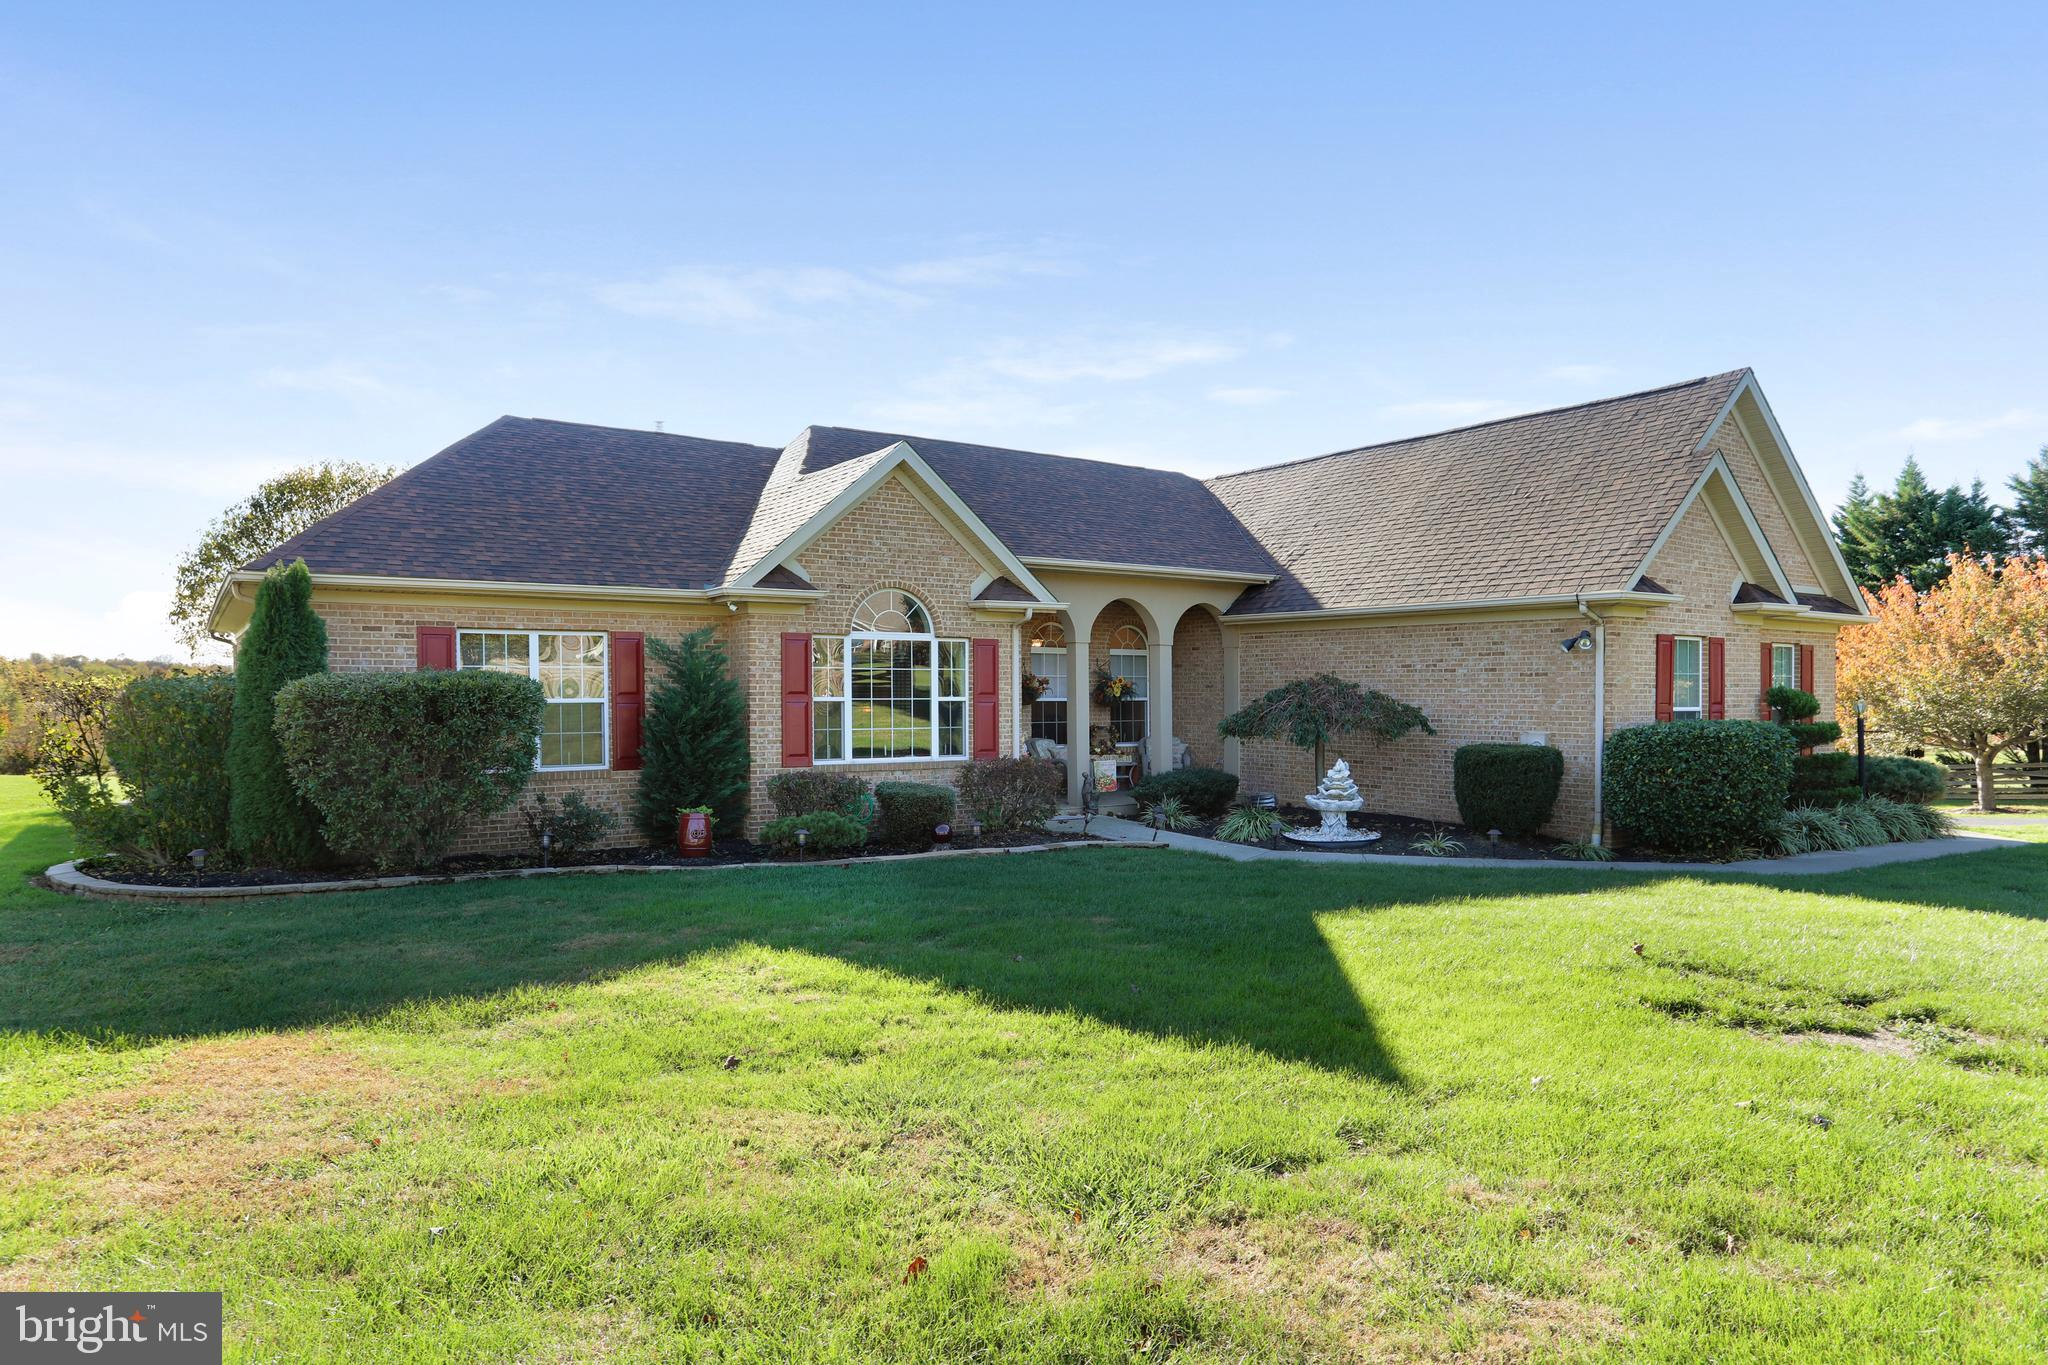 35 PATENT HOUSE, CHARLES TOWN, WV 25414